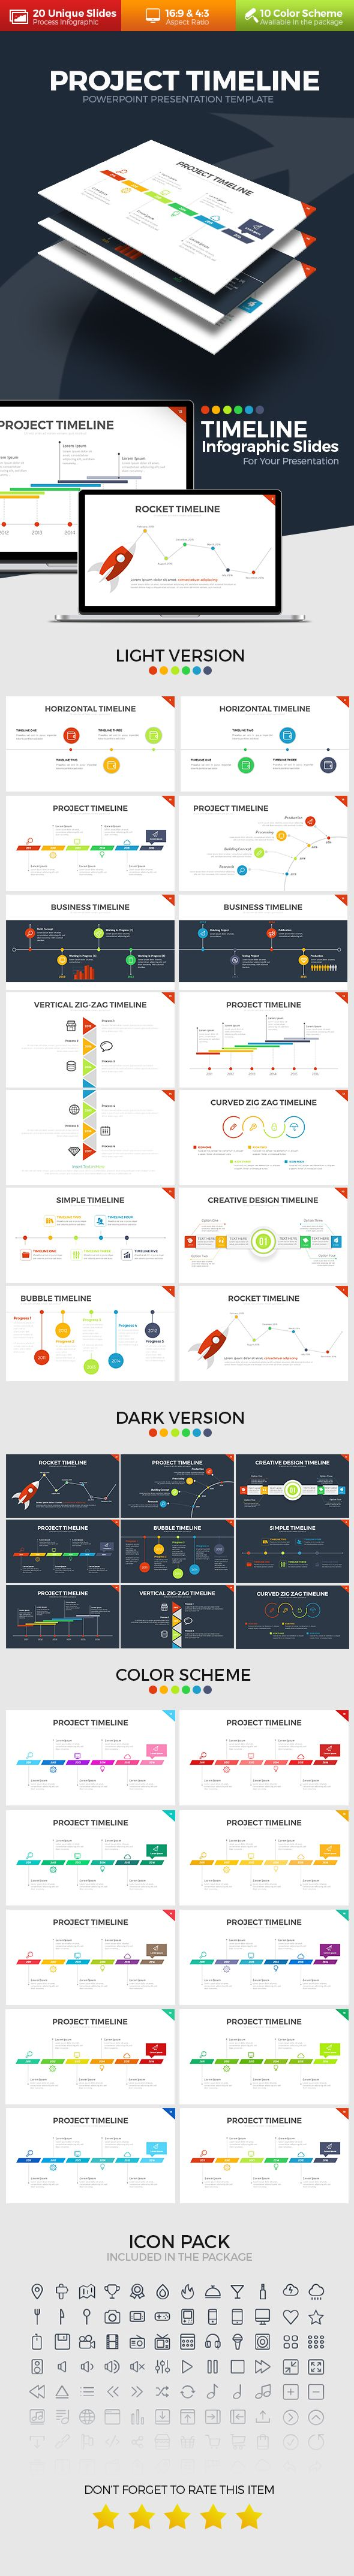 Project Timeline PowerPoint Template #powerpoint #presentation Download : https://graphicriver.net/item/project-timeline-powerpoint-template/17495263?s_rank=7?ref=BrandEarth